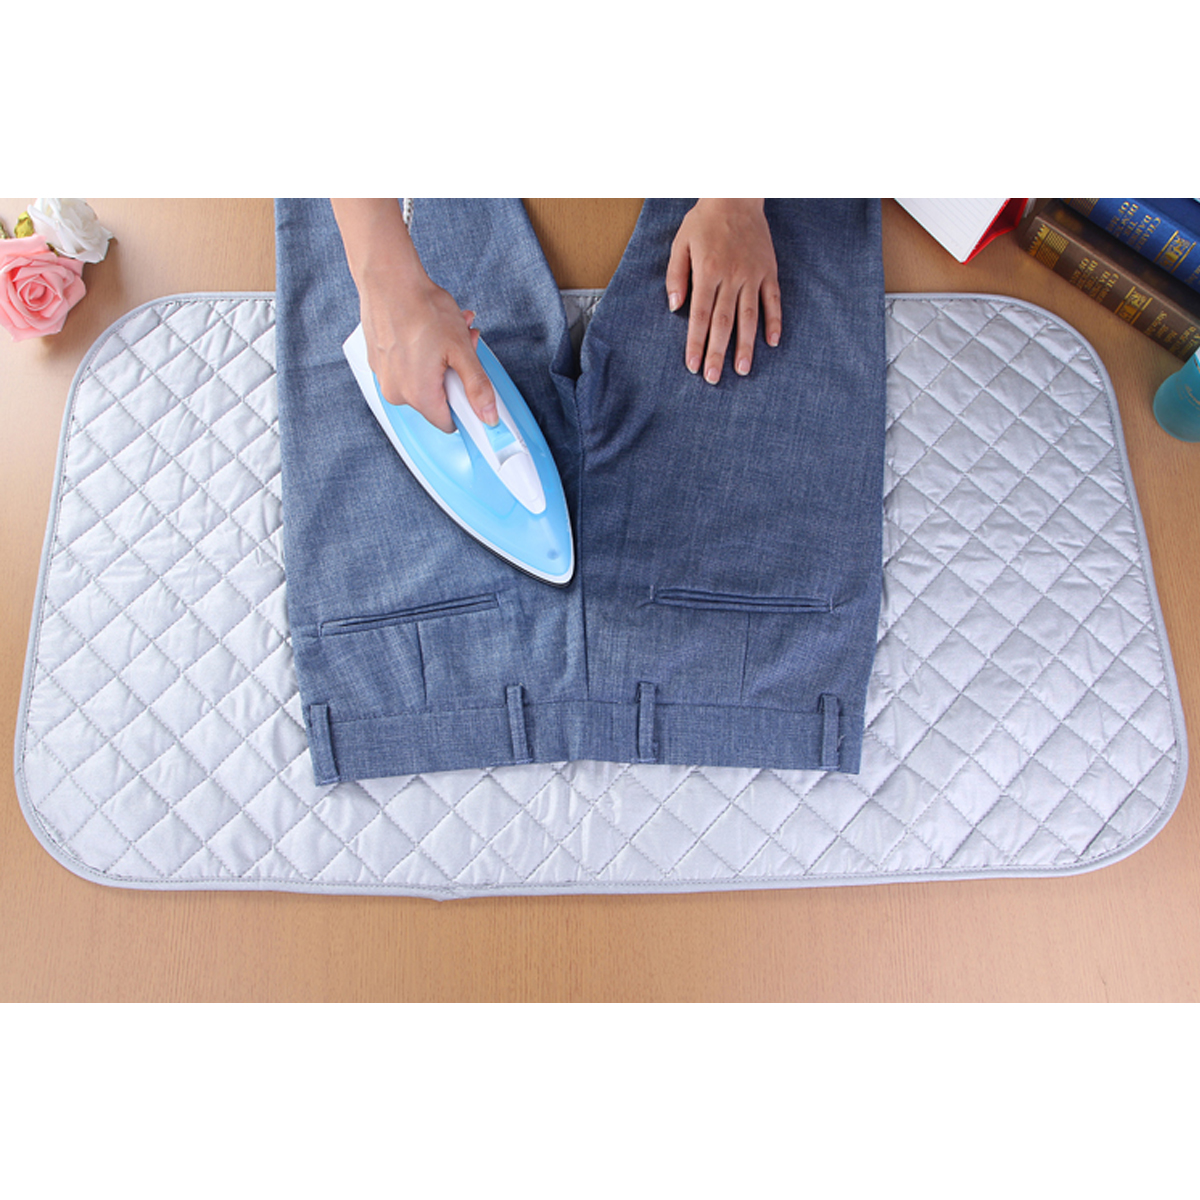 Magnetic Ironing Mats Laundry Pads Washer Dryer Covers Board Heat Resistant Blankets